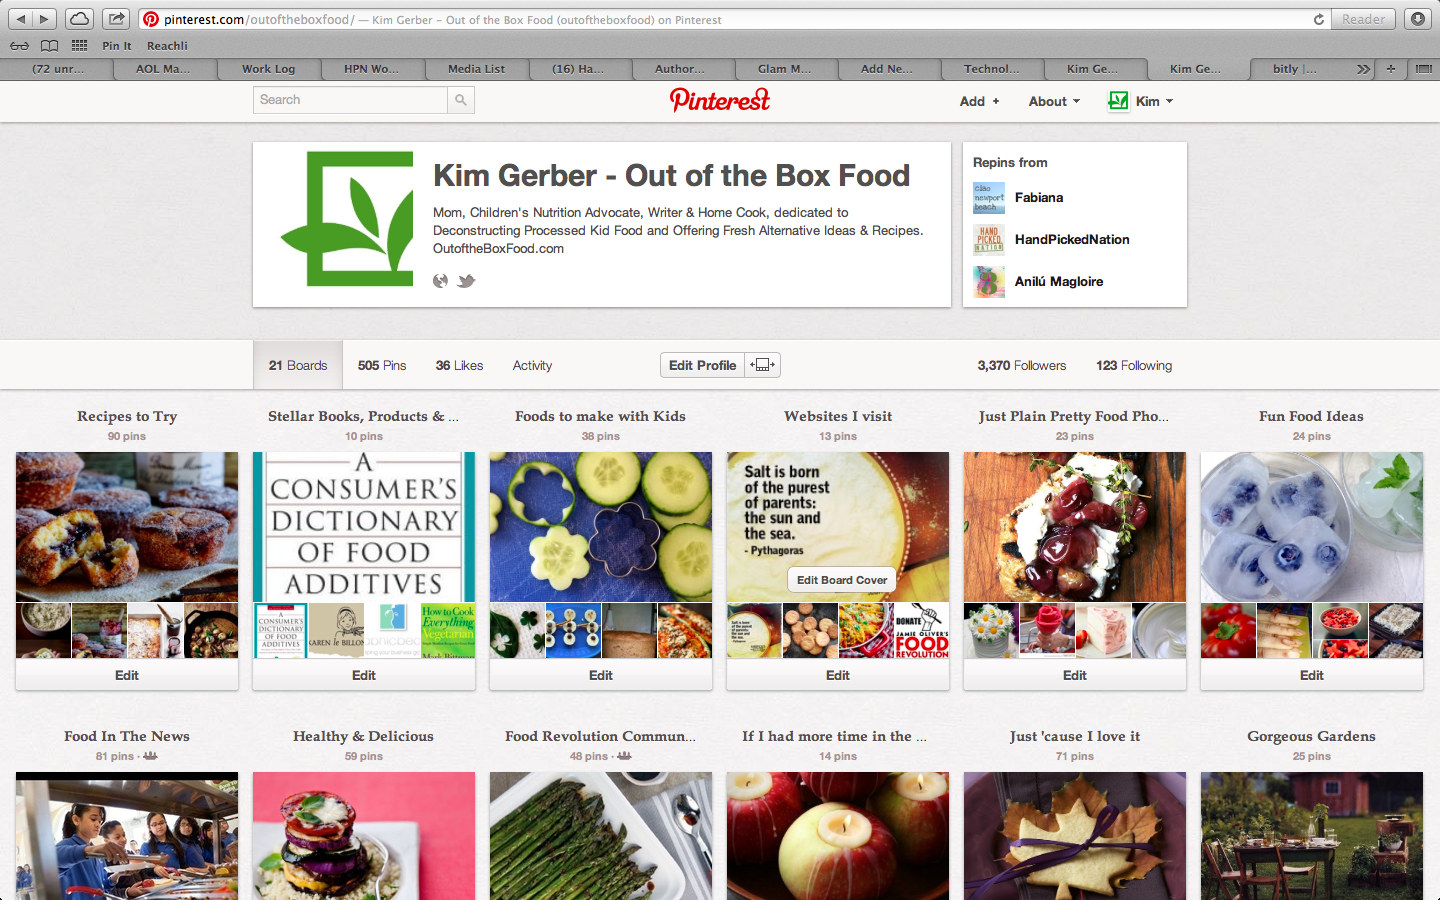 Out of the Box Food on Pinterest